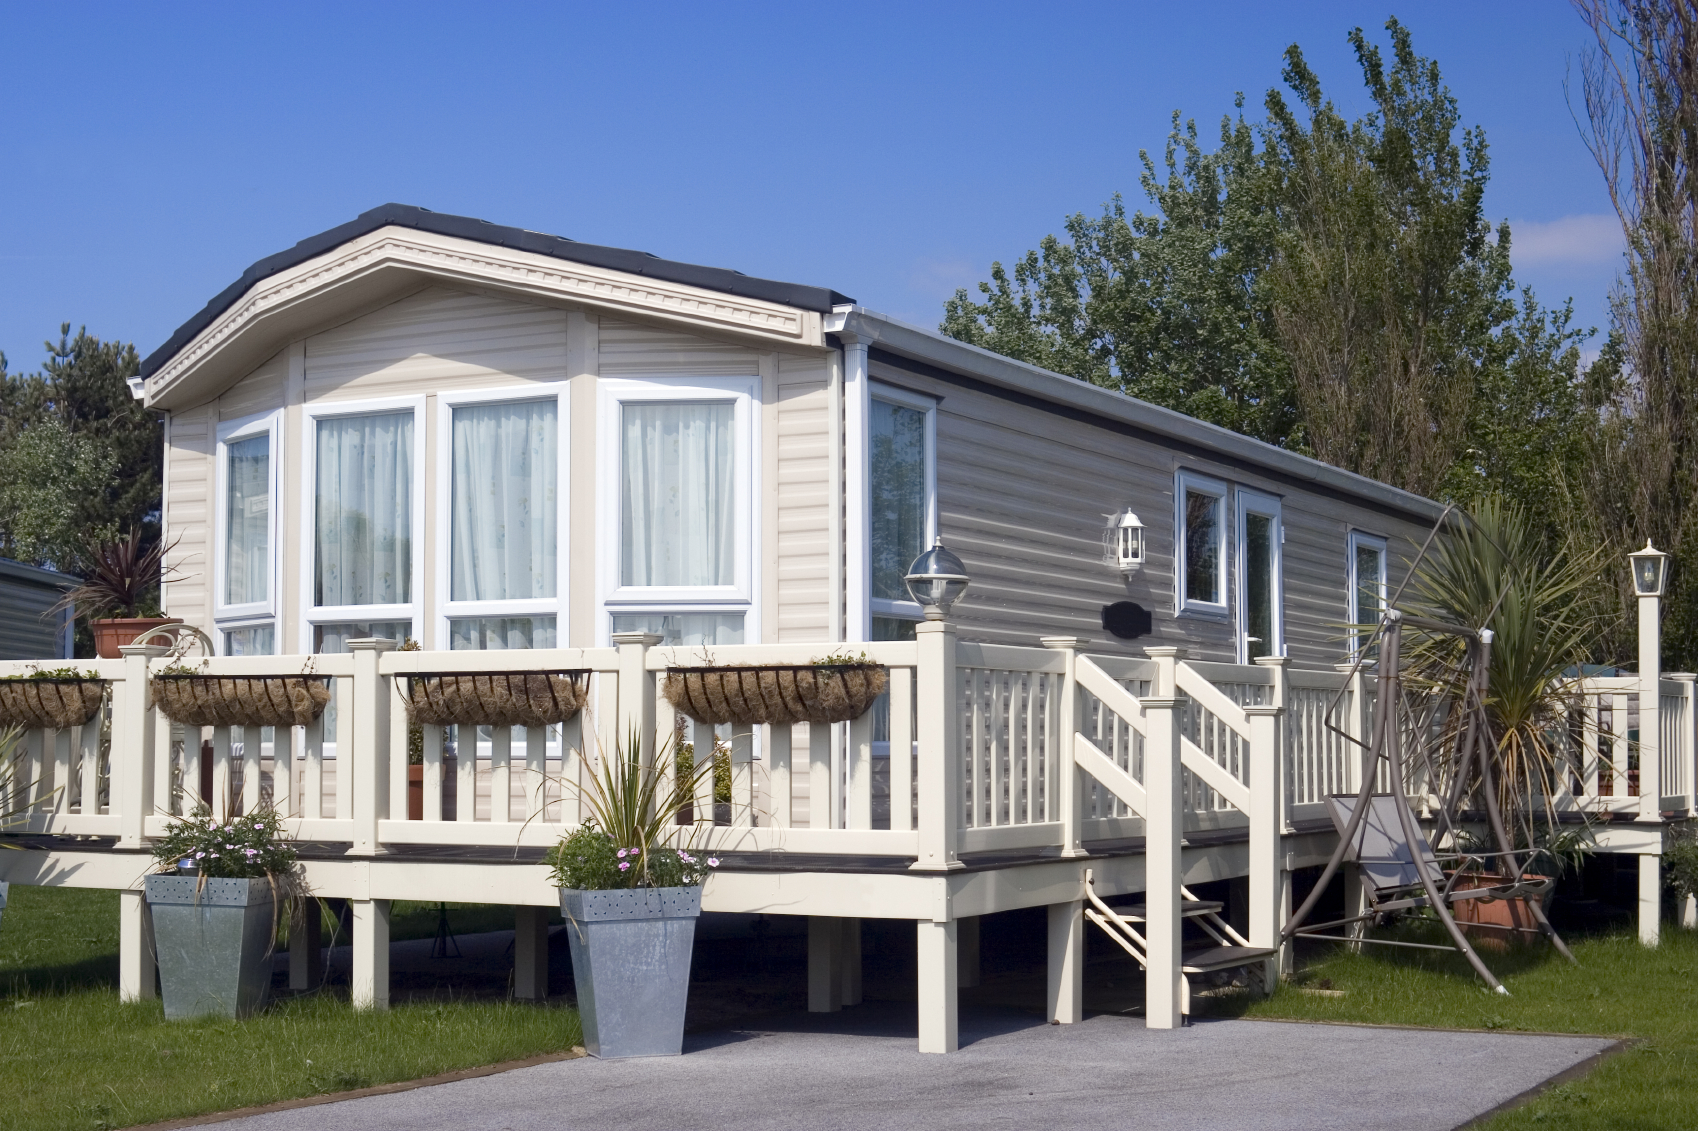 Manufactured Homes Cost Simple 4 Benefits Of Manufactured Homes  Manufactured Homes Benefits Inspiration